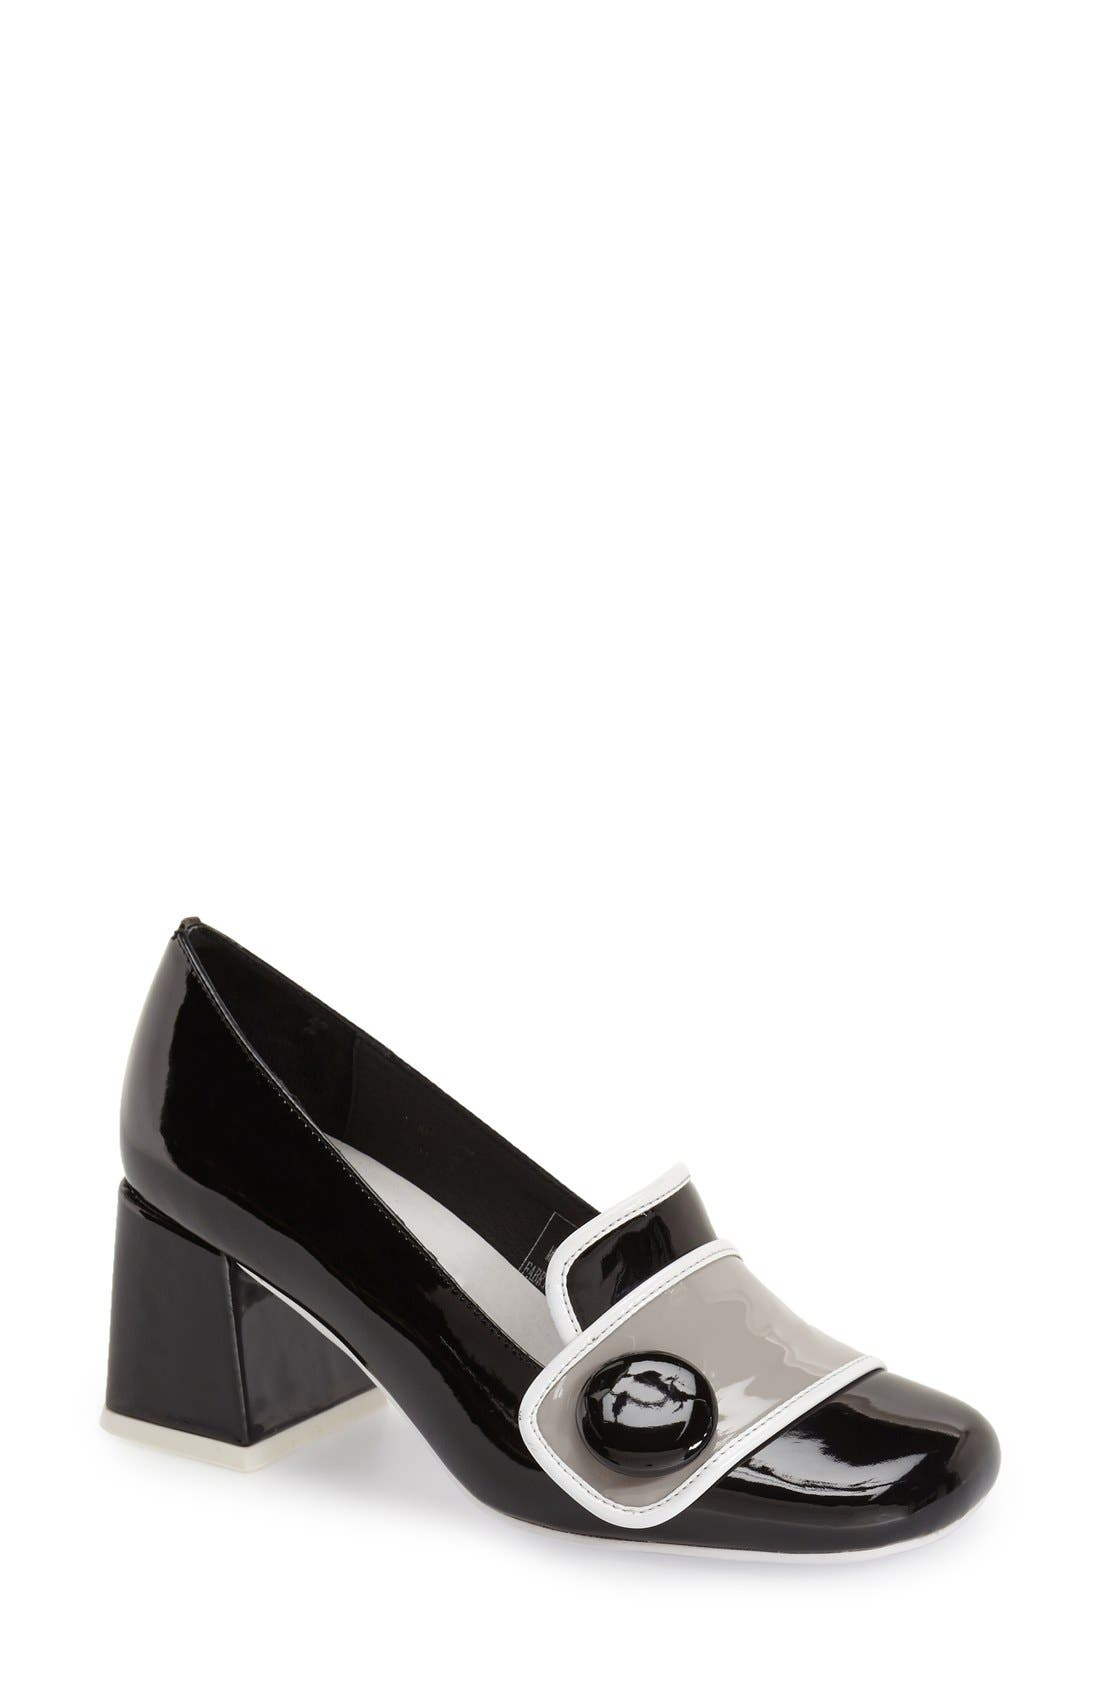 Alternate Image 1 Selected - Jeffrey Campbell 'Enid' Button Pump (Women)